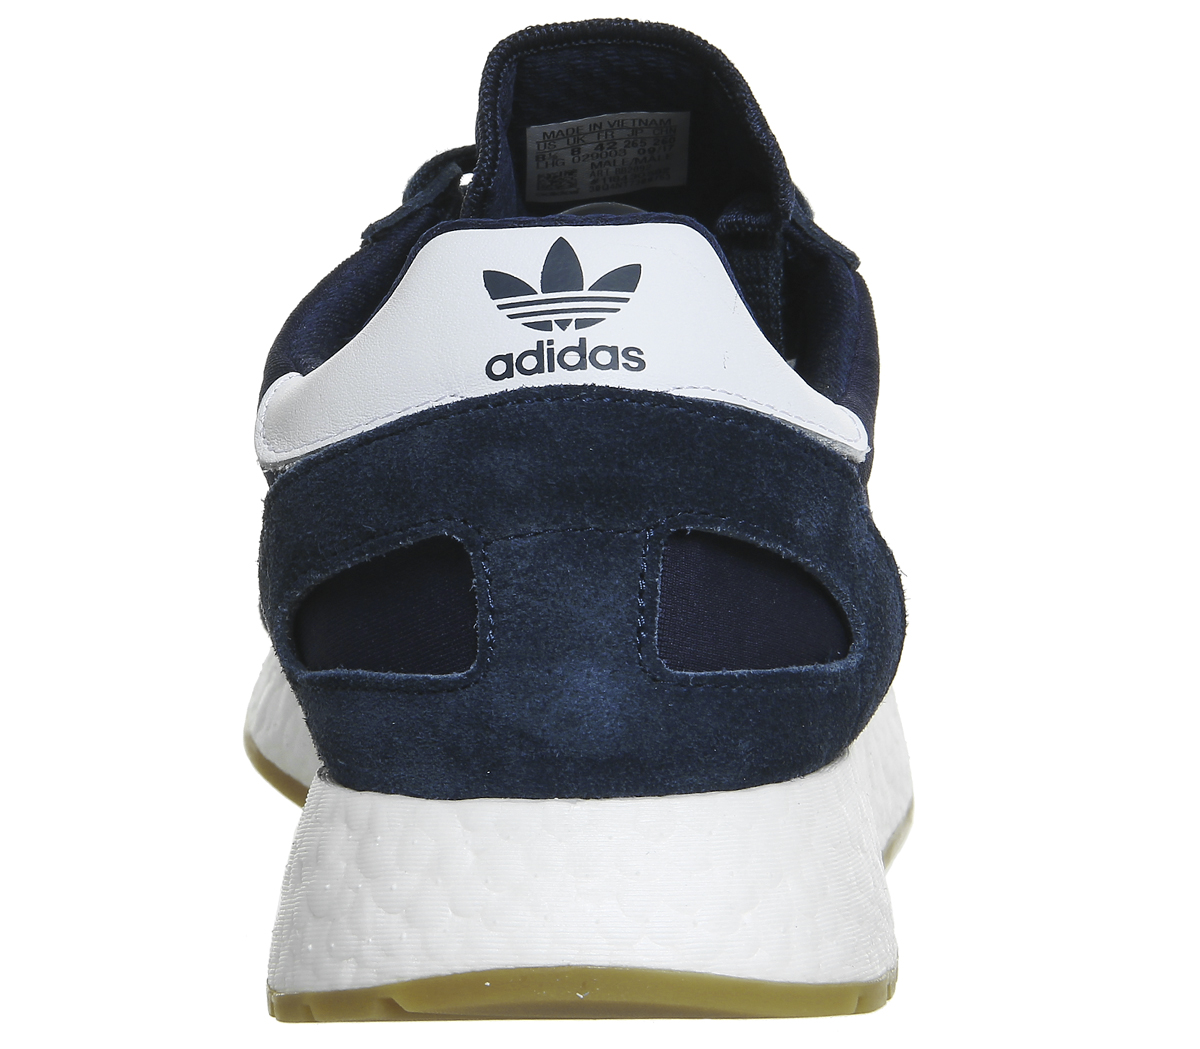 Womens Bdidas I-5923 Trainers COLLEGIBTE NBVY GUM Trainers Shoes